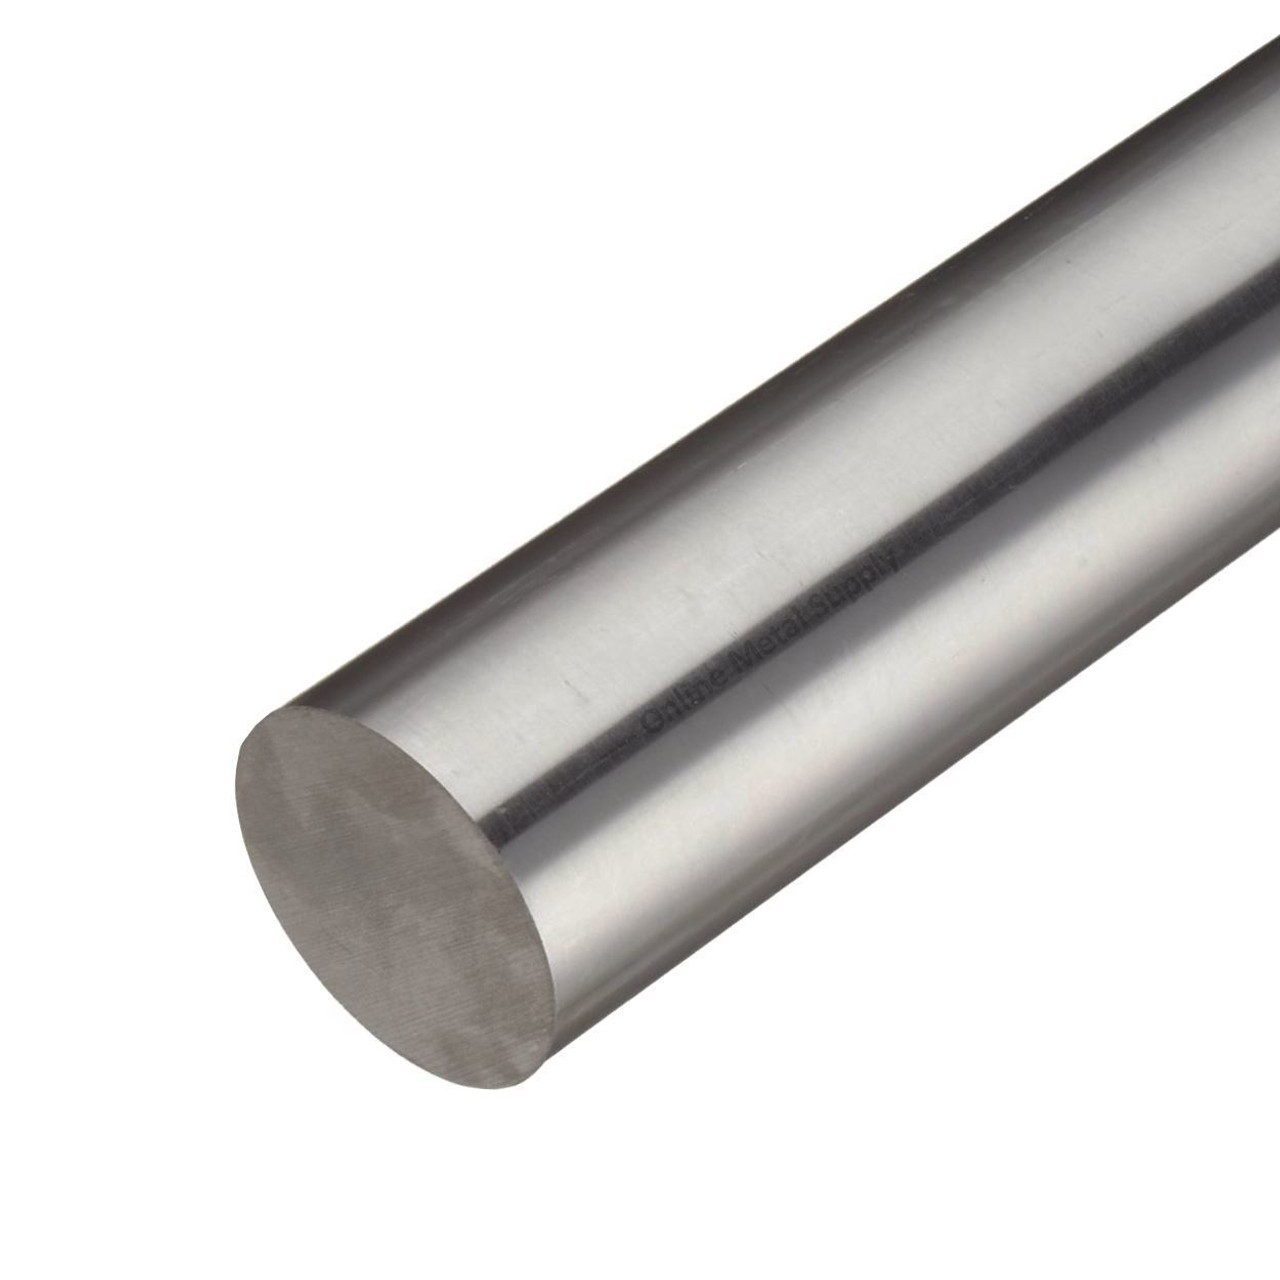 1.687 (1-11/16 inch) x 48 inches, 416 CF Stainless Steel Round Rod